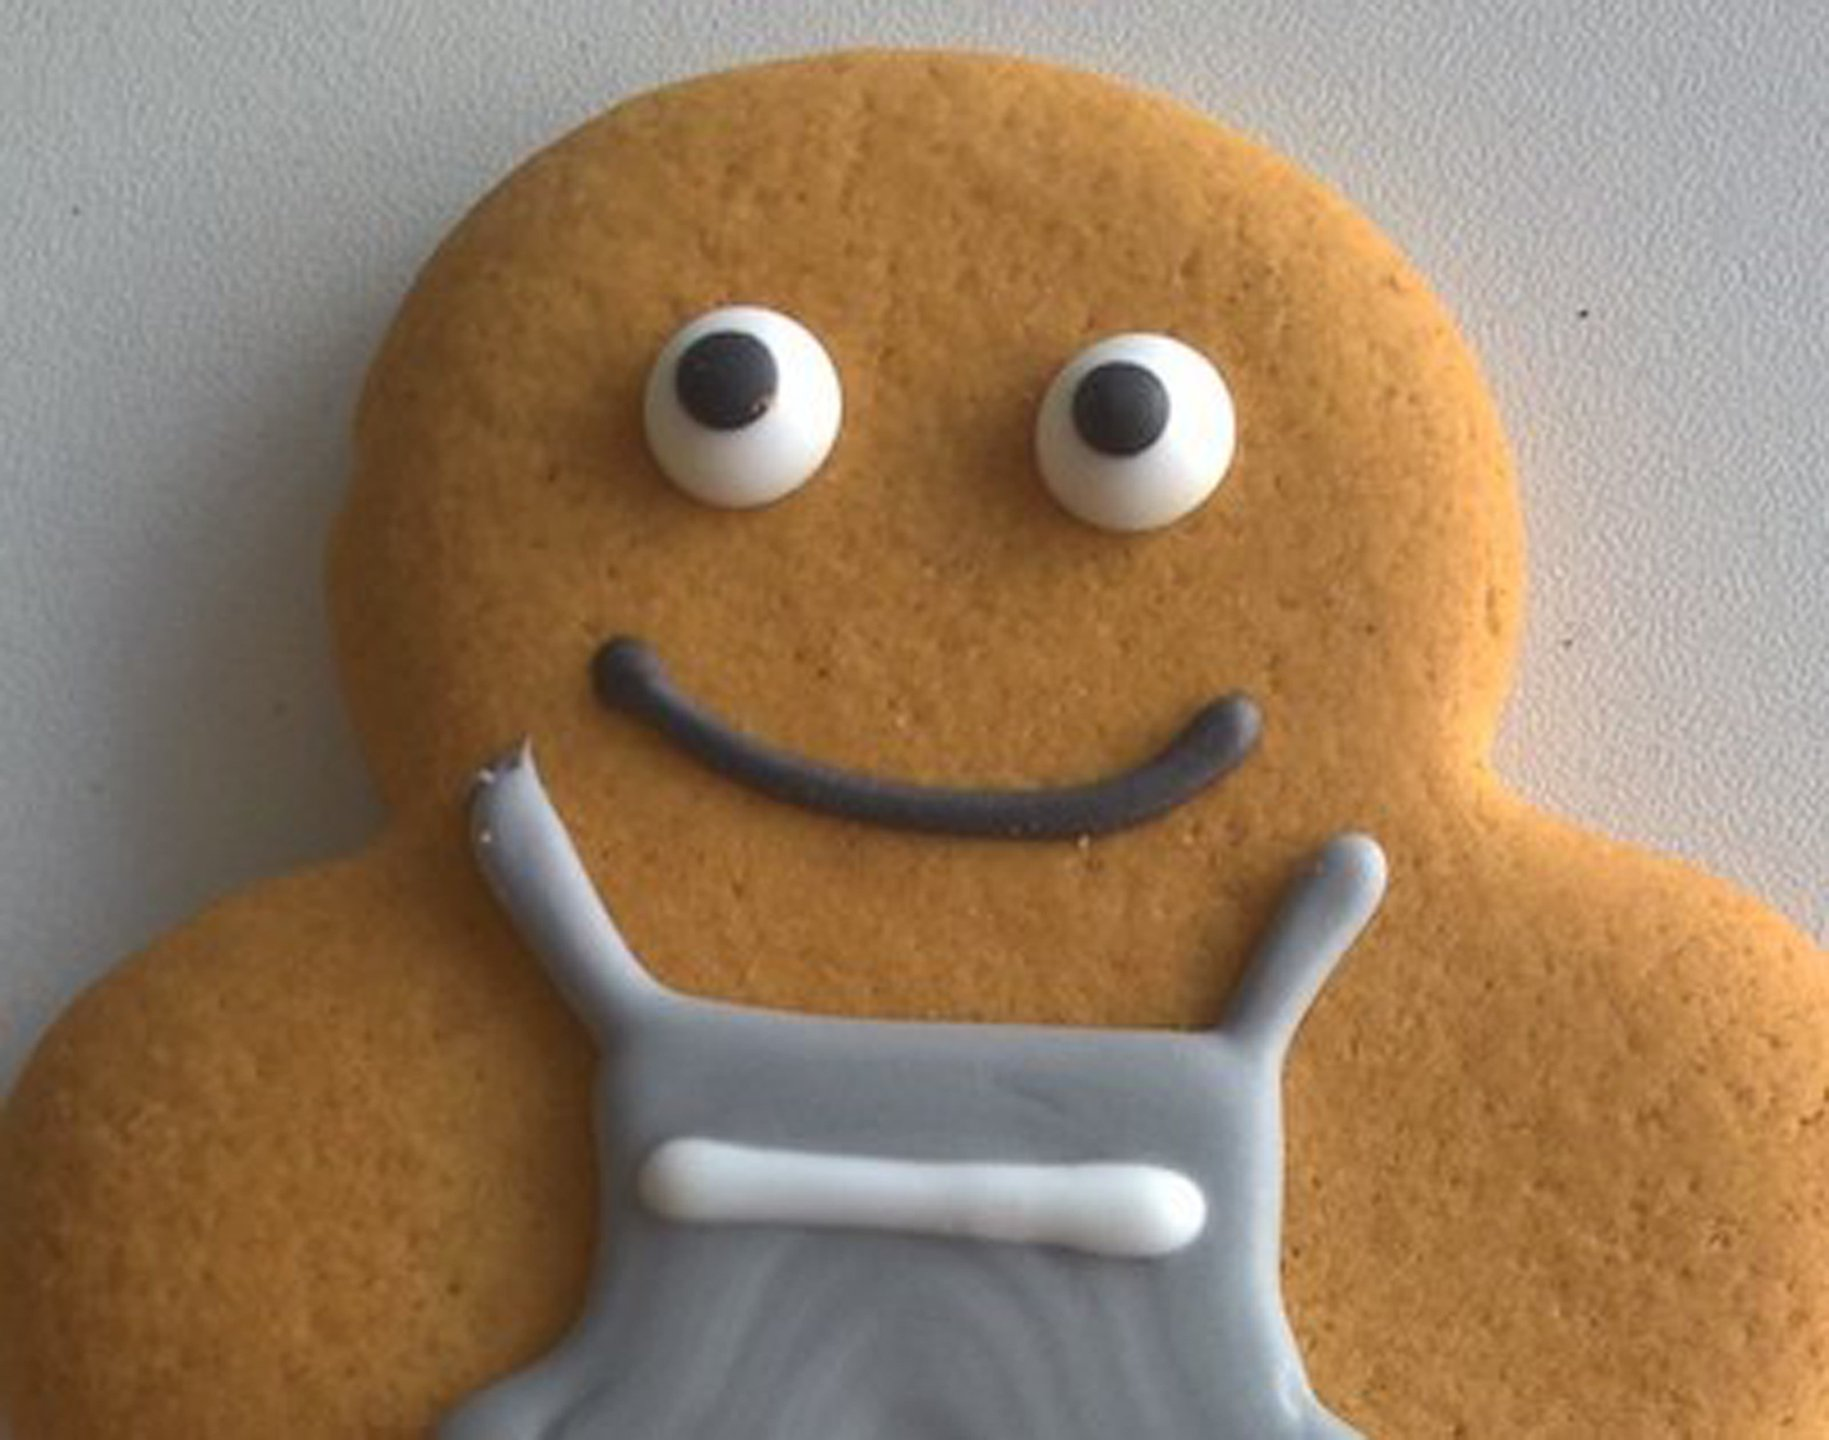 Co-op needs help to name their new gender-neutral gingerbread person